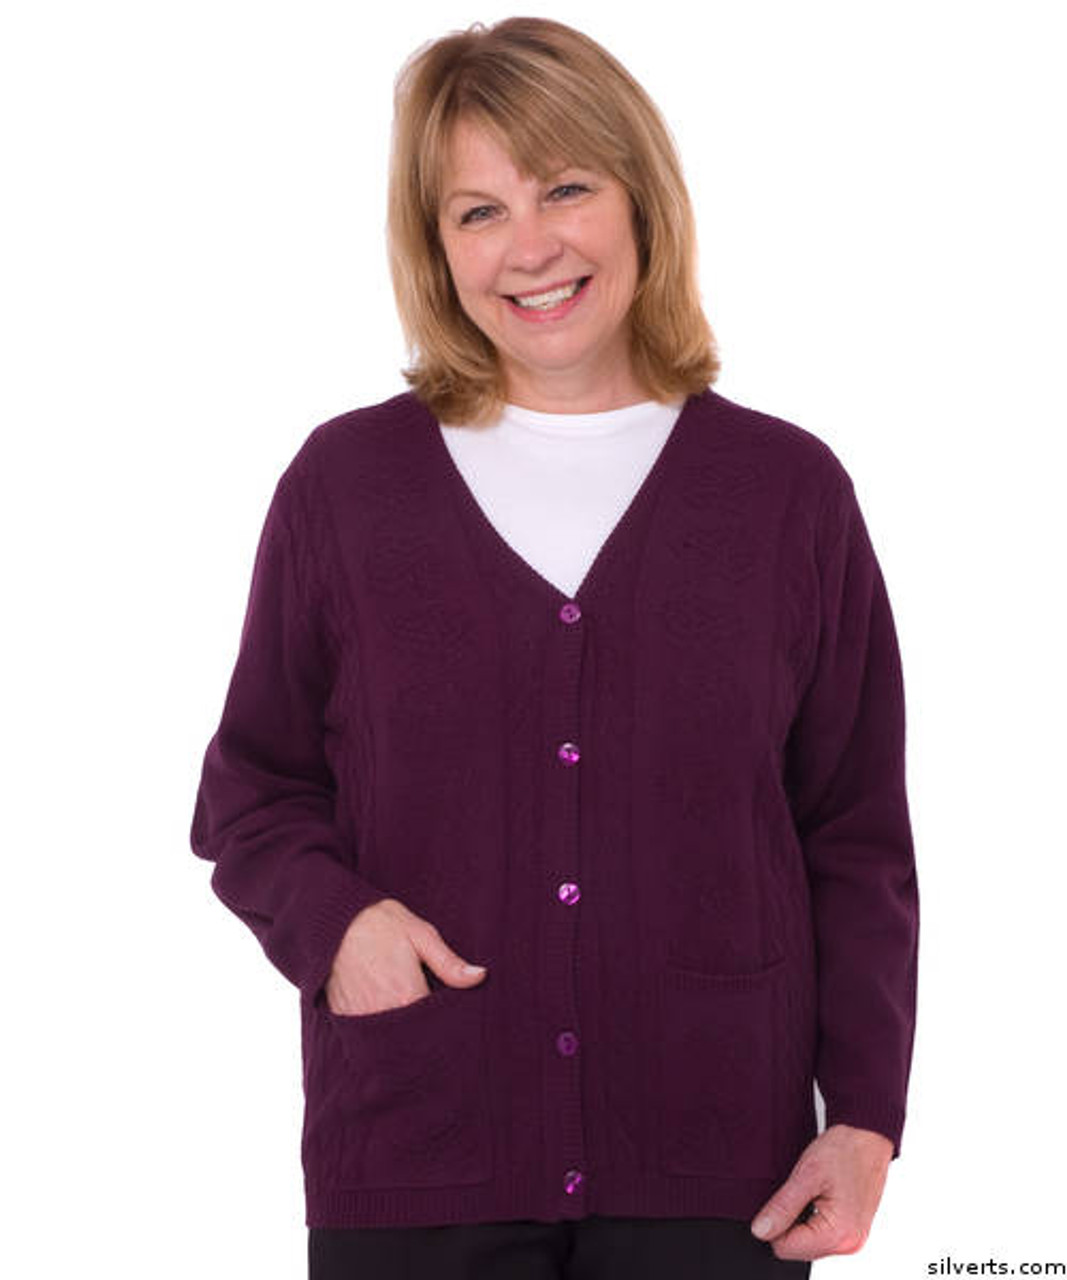 Silvert's 270840606 Women's Adaptive Warm Cardigan Sweater With Pockets, Size 2X Large, PLUM